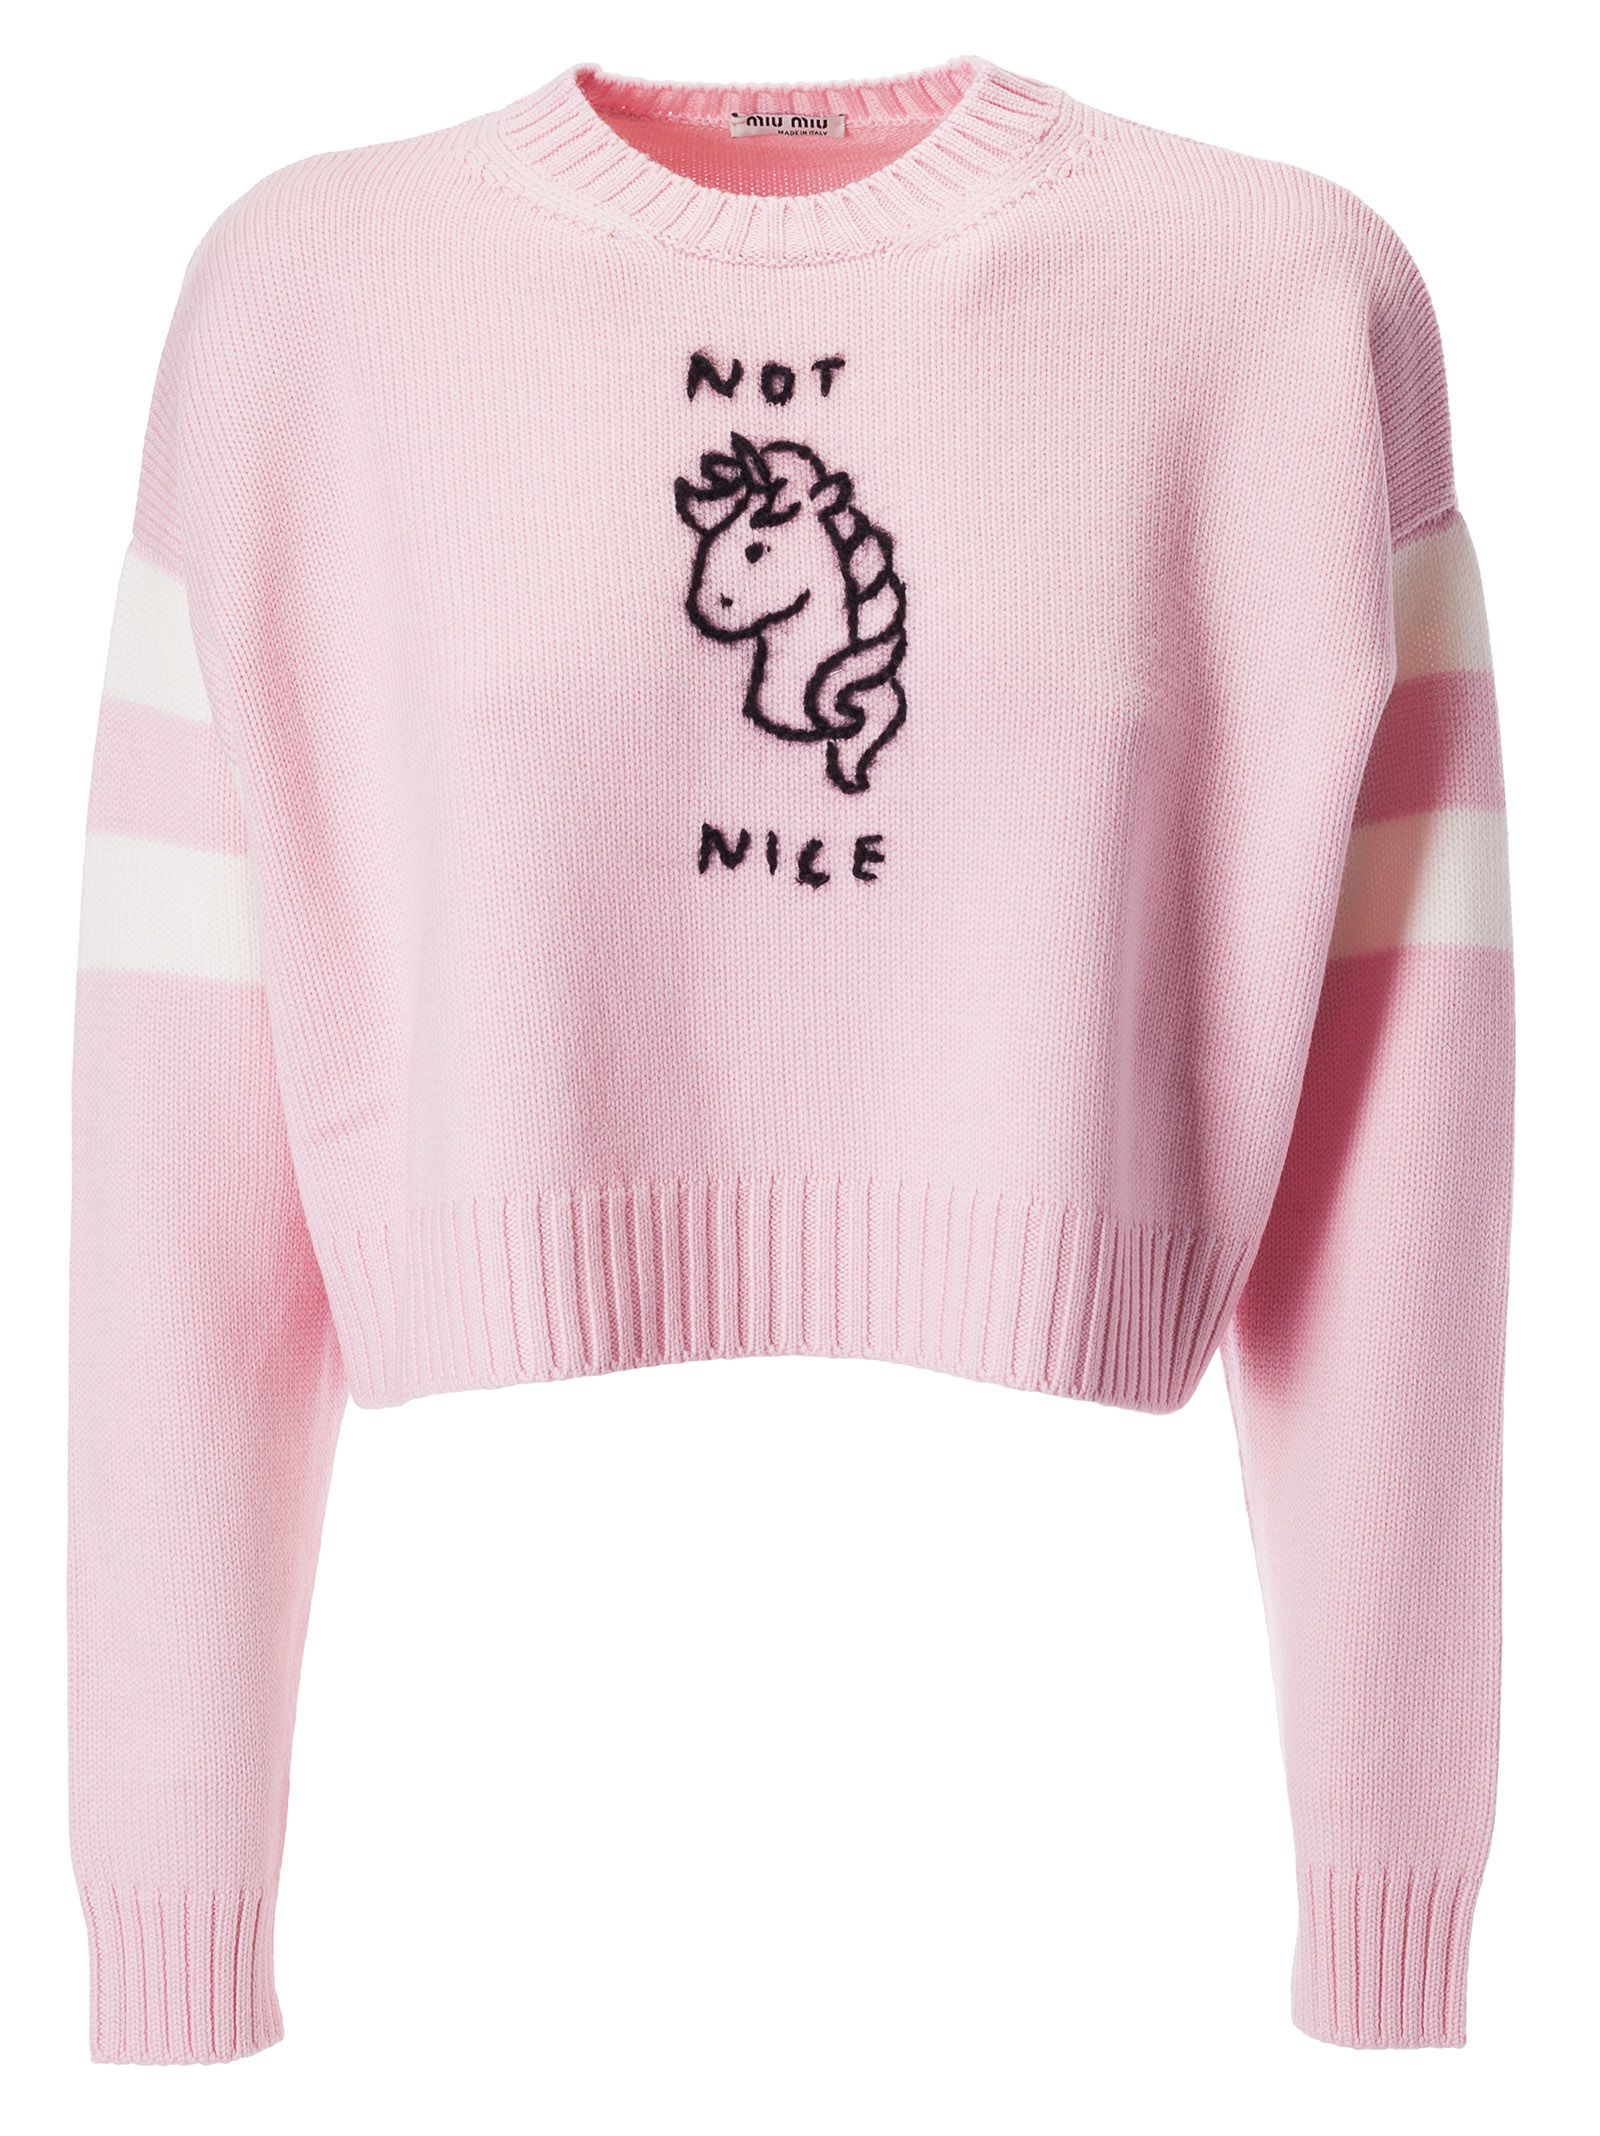 Miu Miu Not Nice Embroidered Sweater